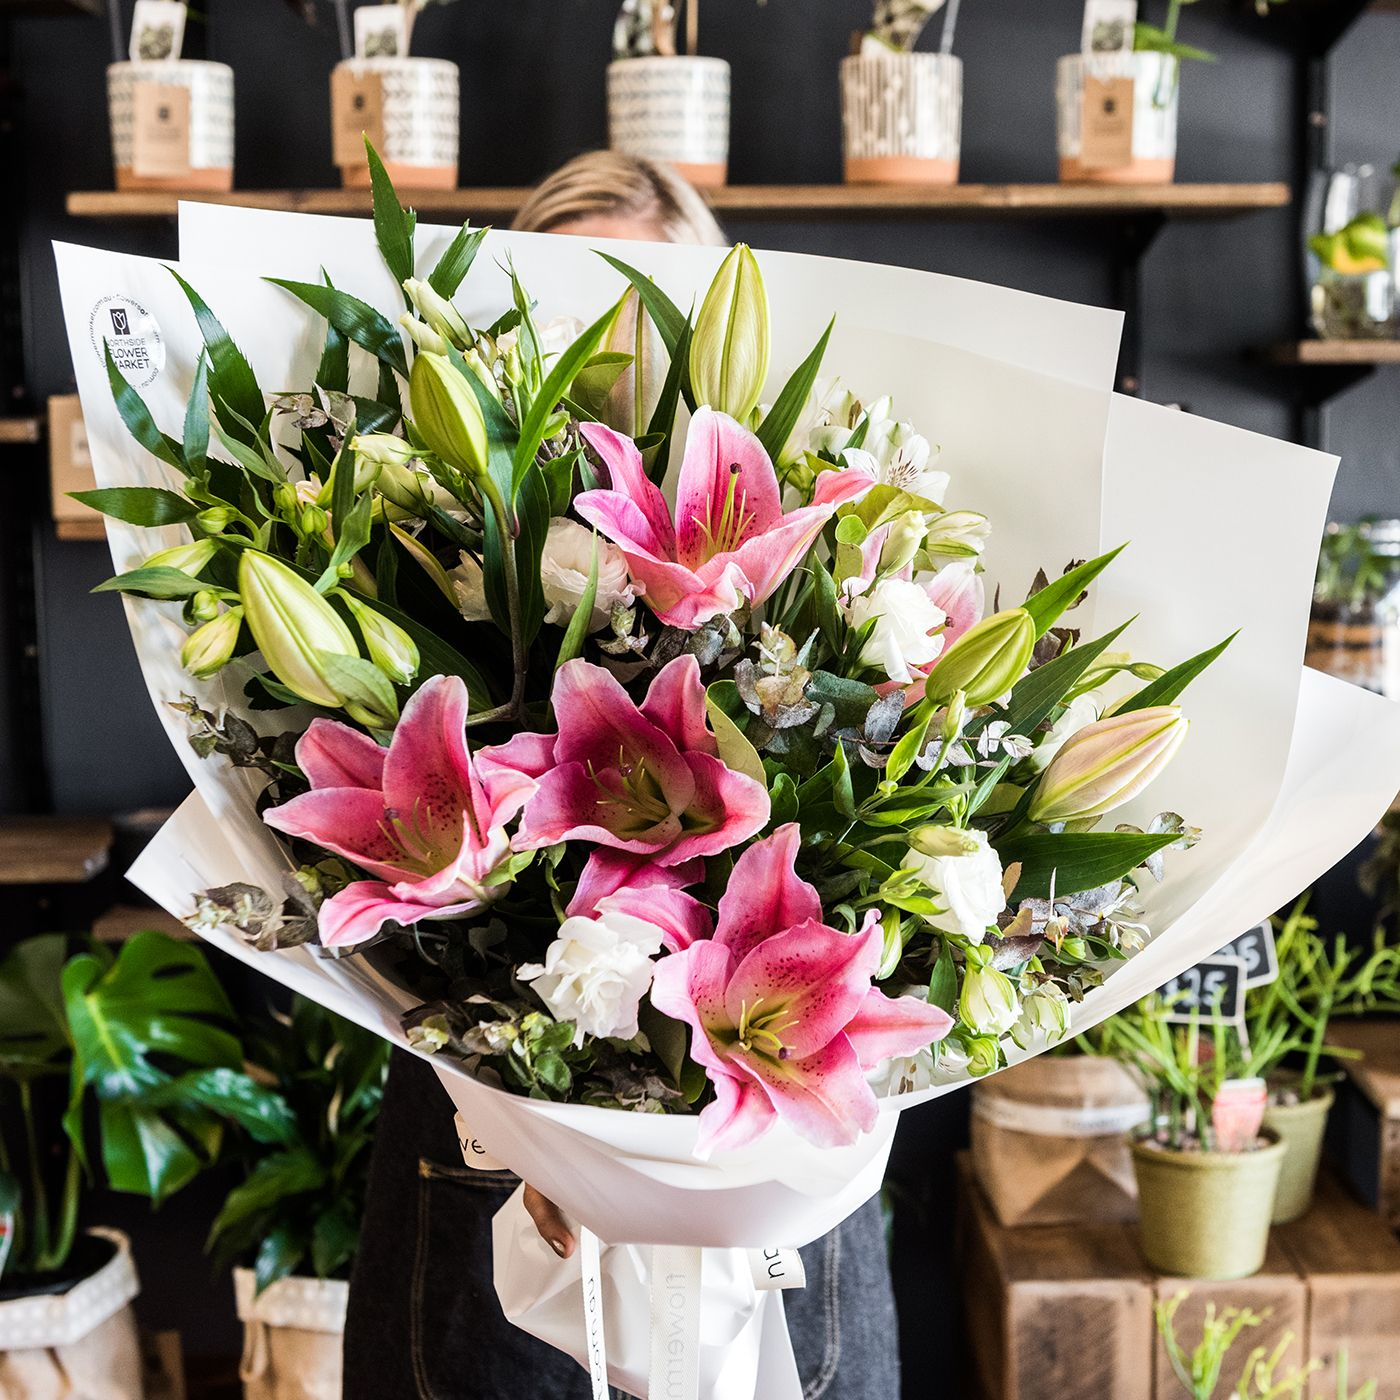 Today's Bouquet of the Day is a fragrant Pink Lily bouquet